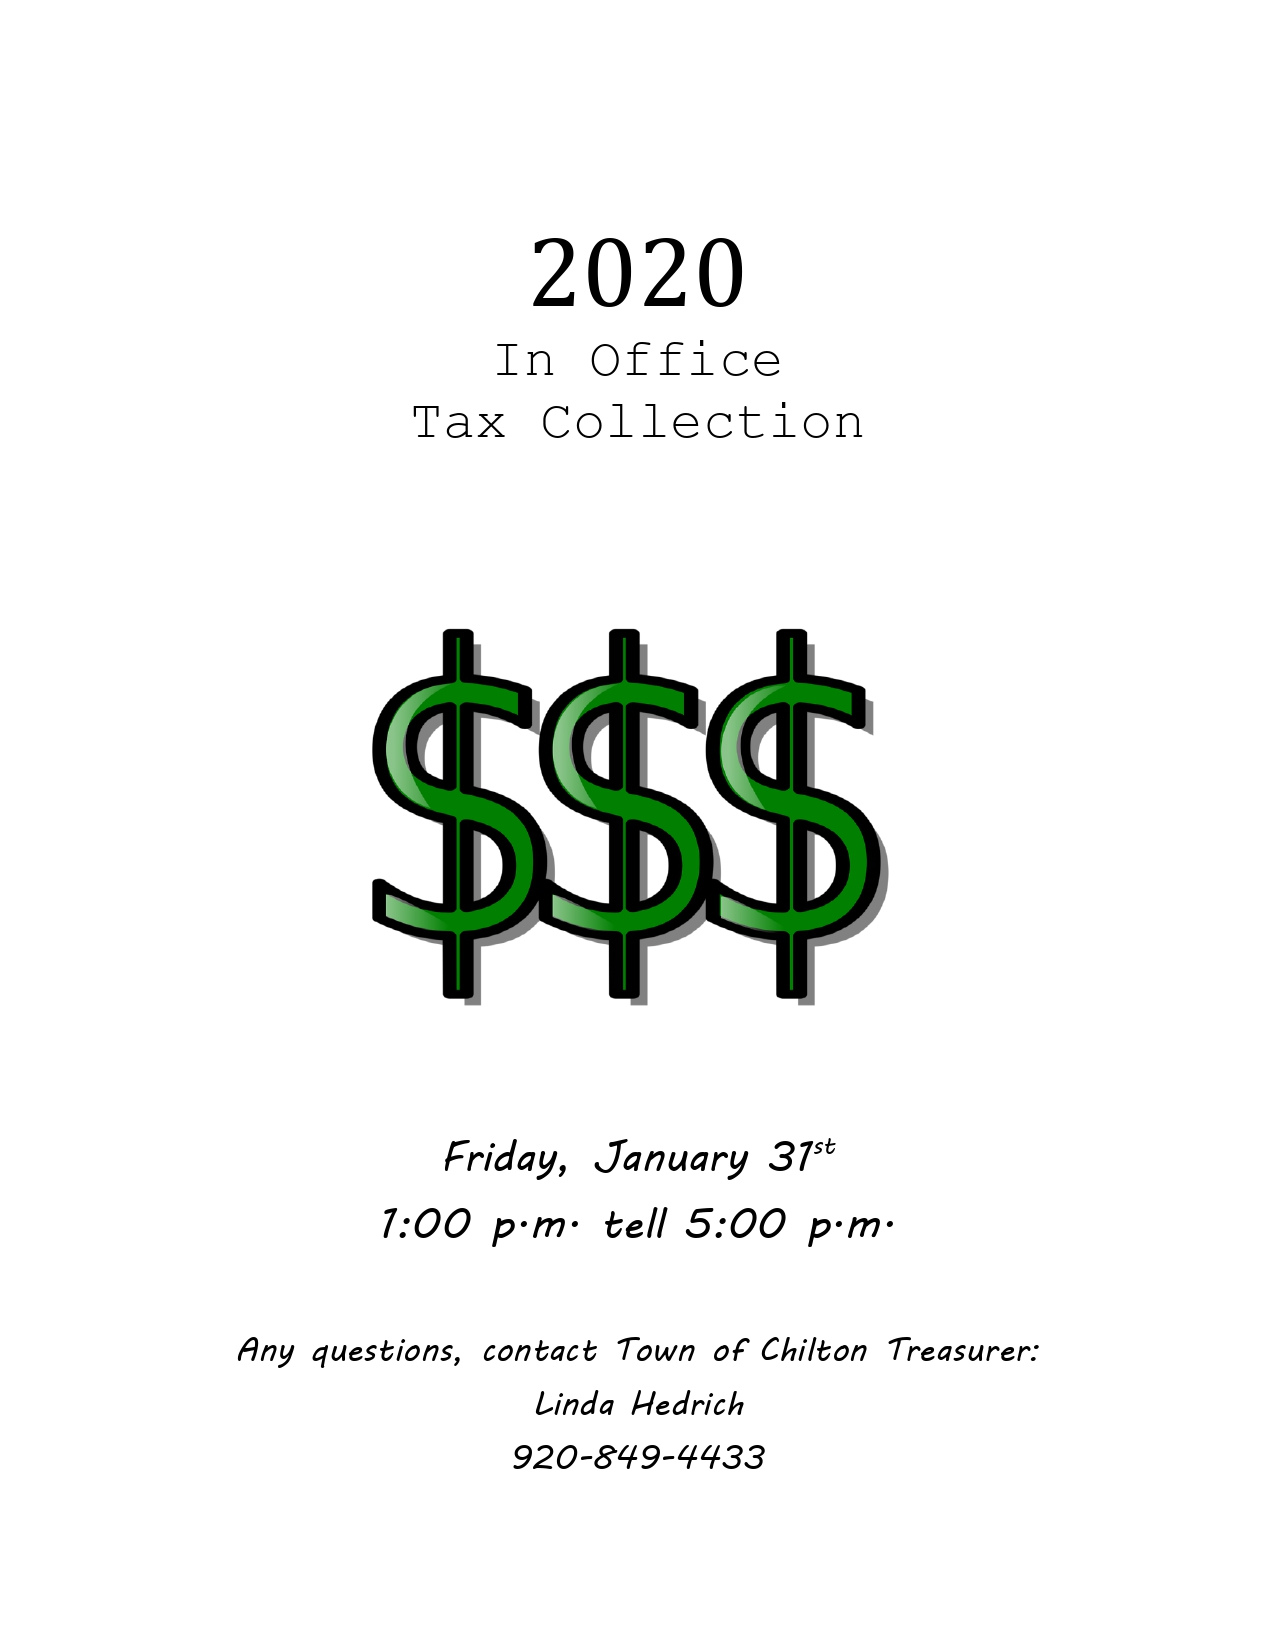 2020-tax-collection-announcement (1)_page-0001